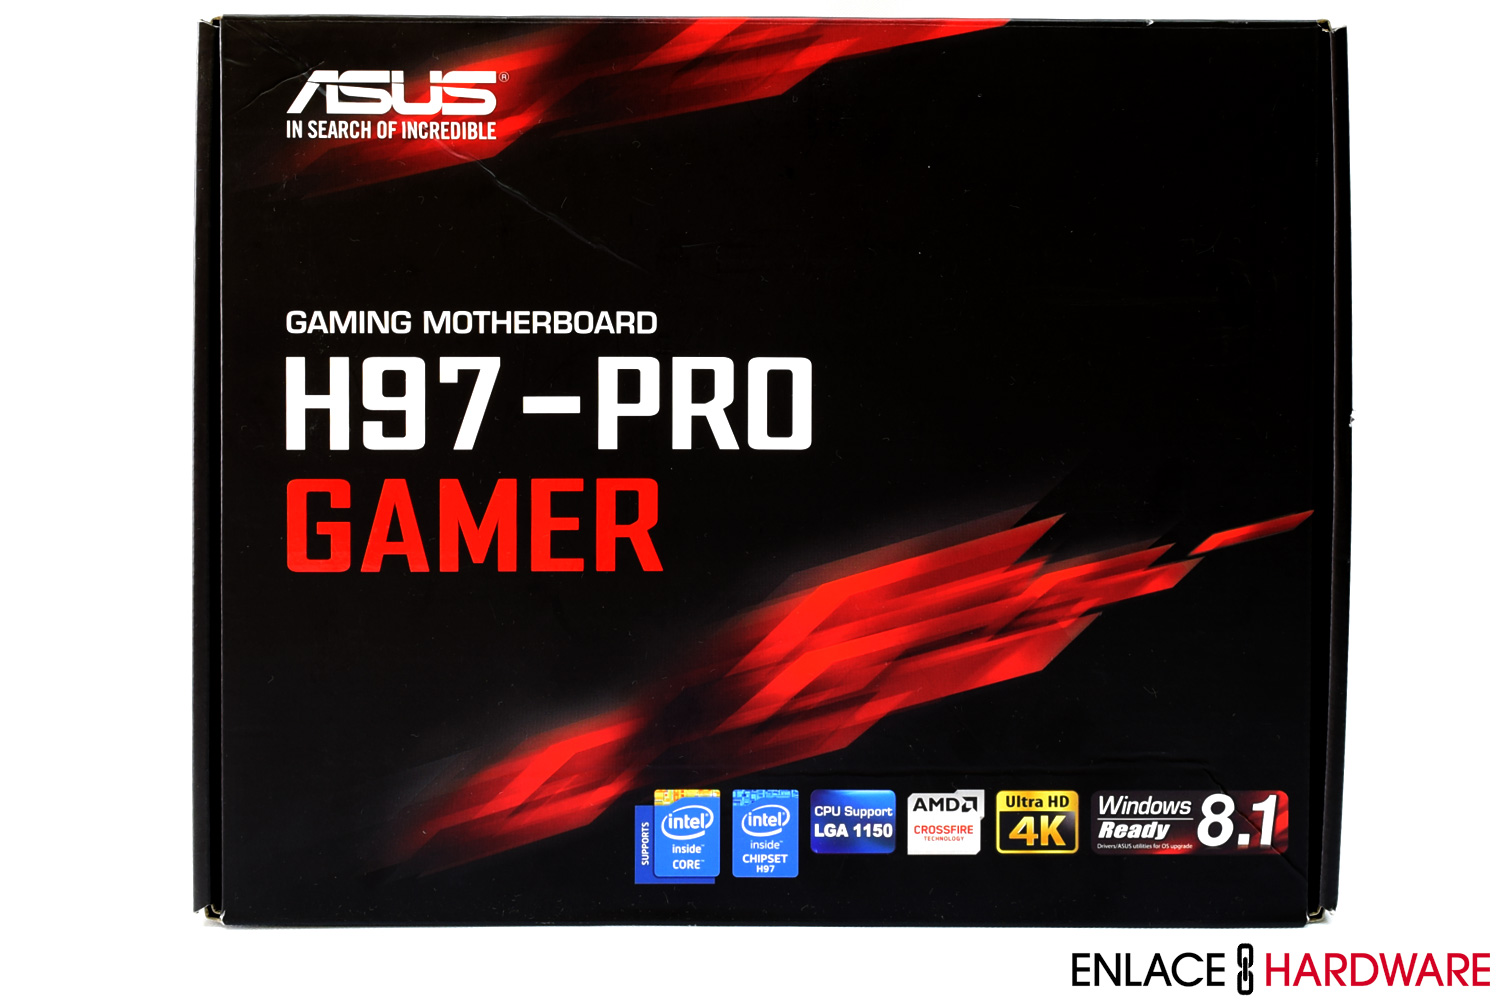 ASUS-H97-Pro-Gamer-Review-2